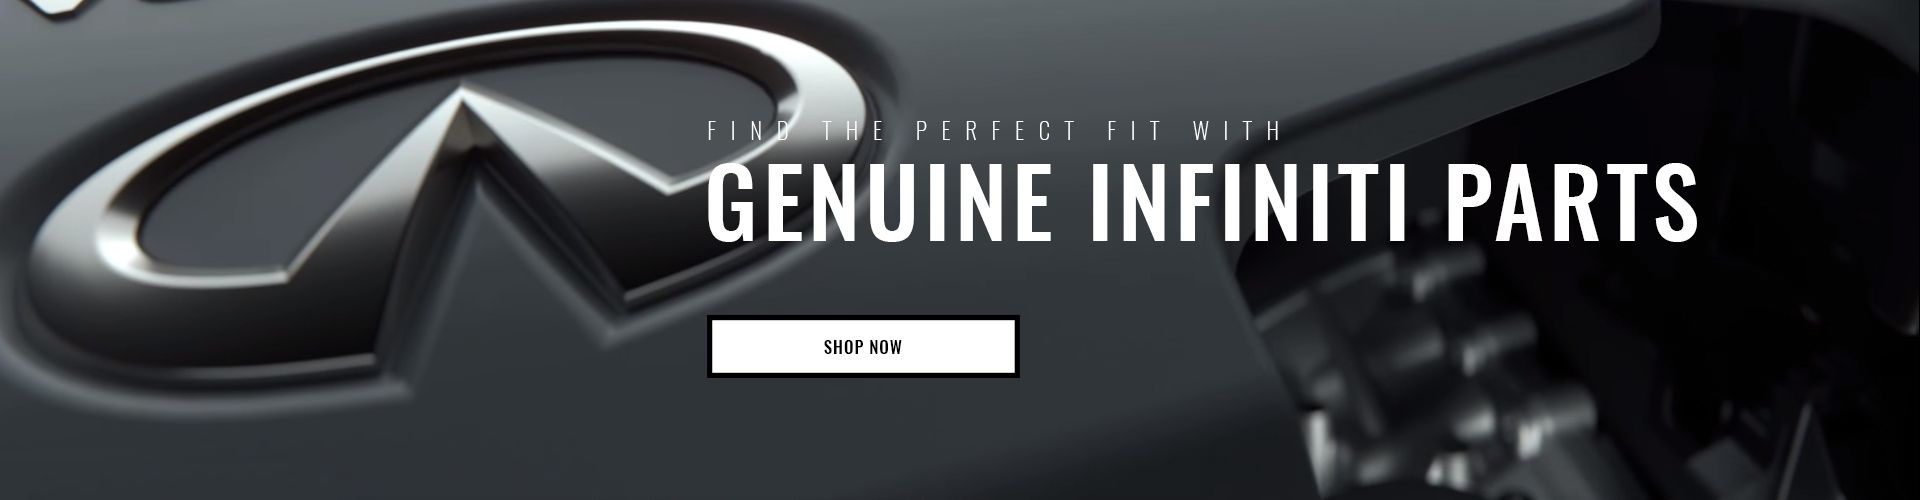 Genuine Infiniti Parts and Accessories